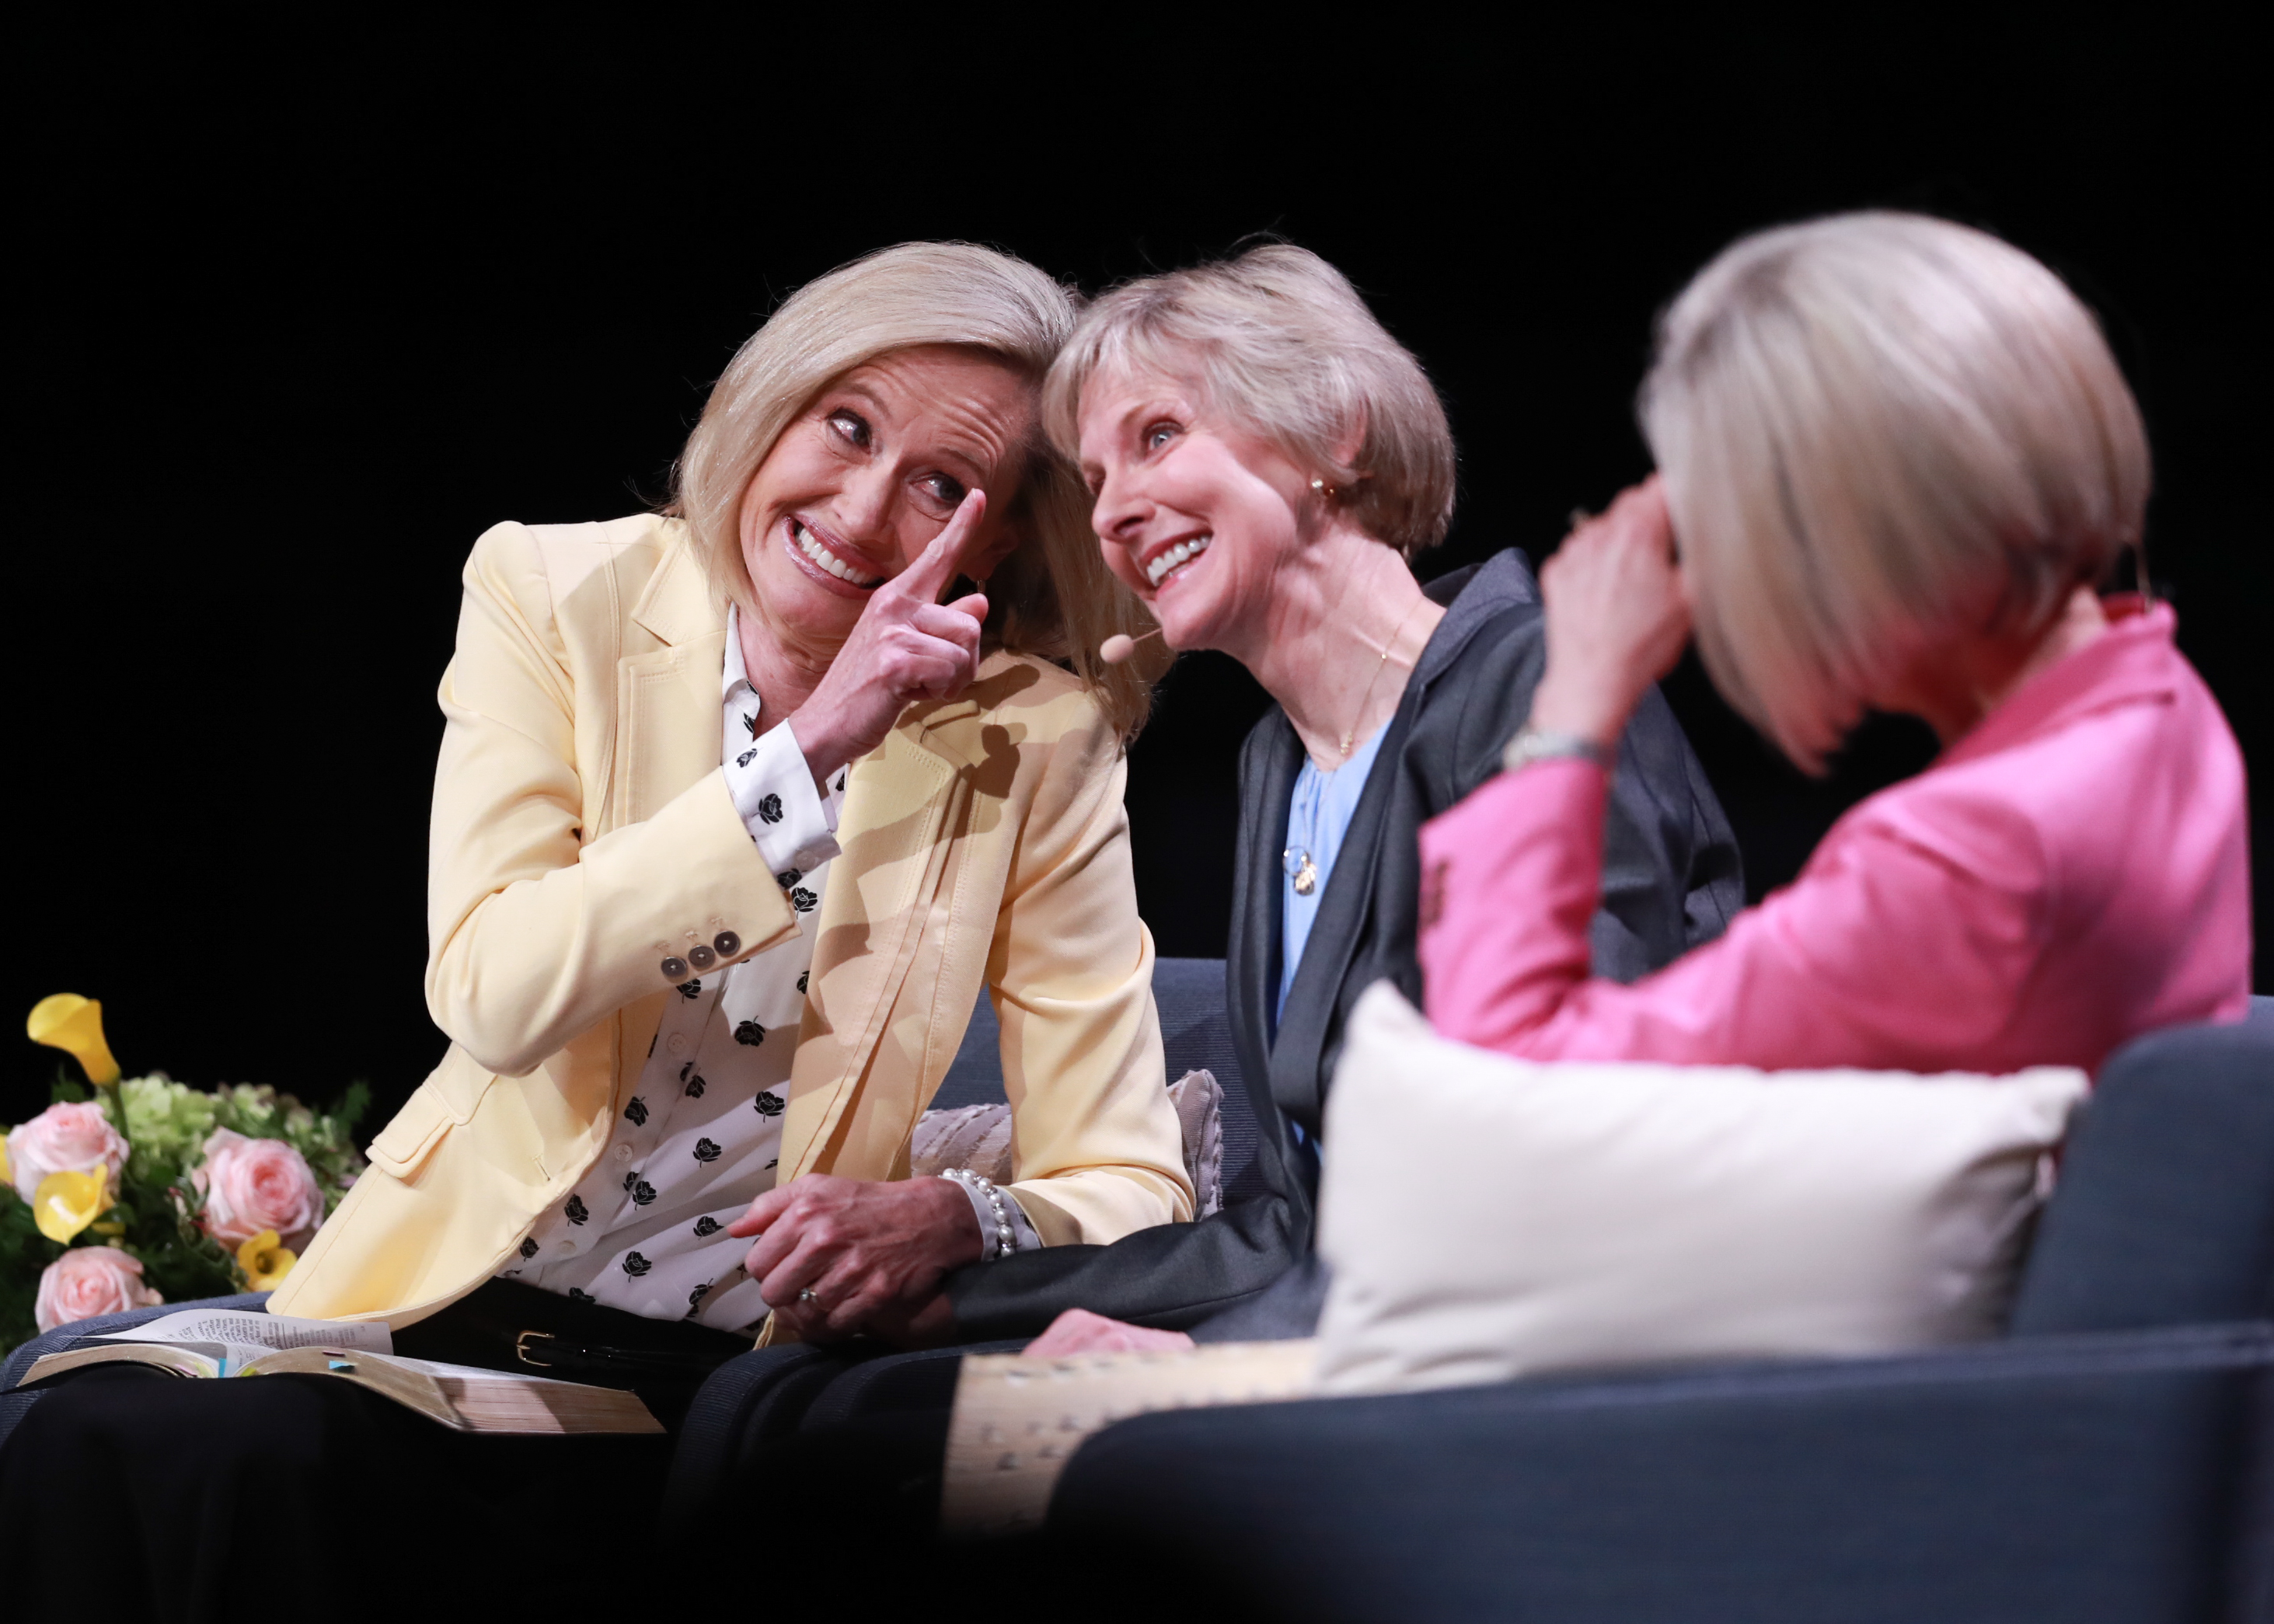 Sister Bonnie H. Cordon, Sister Jean B. Bingham and Sister Joy D. Jones participate in the first Sister-to-Sister event during the 2019 BYU Women's Conference, held in the Marriott Center at BYU in Provo, Utah, on May 3, 2019.